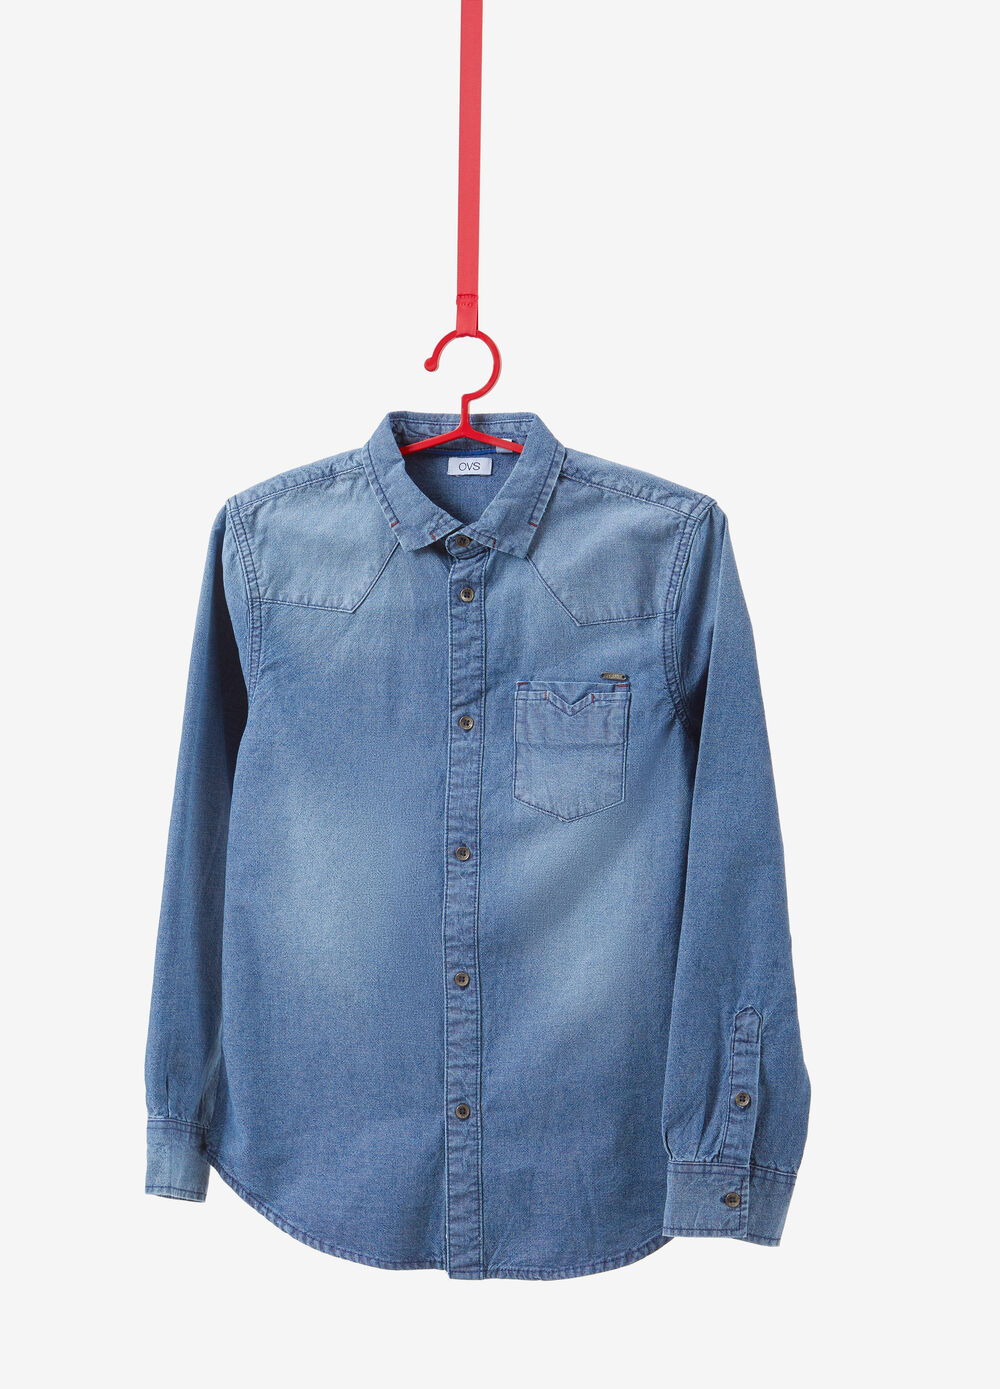 100% cotton shirt with washed effect